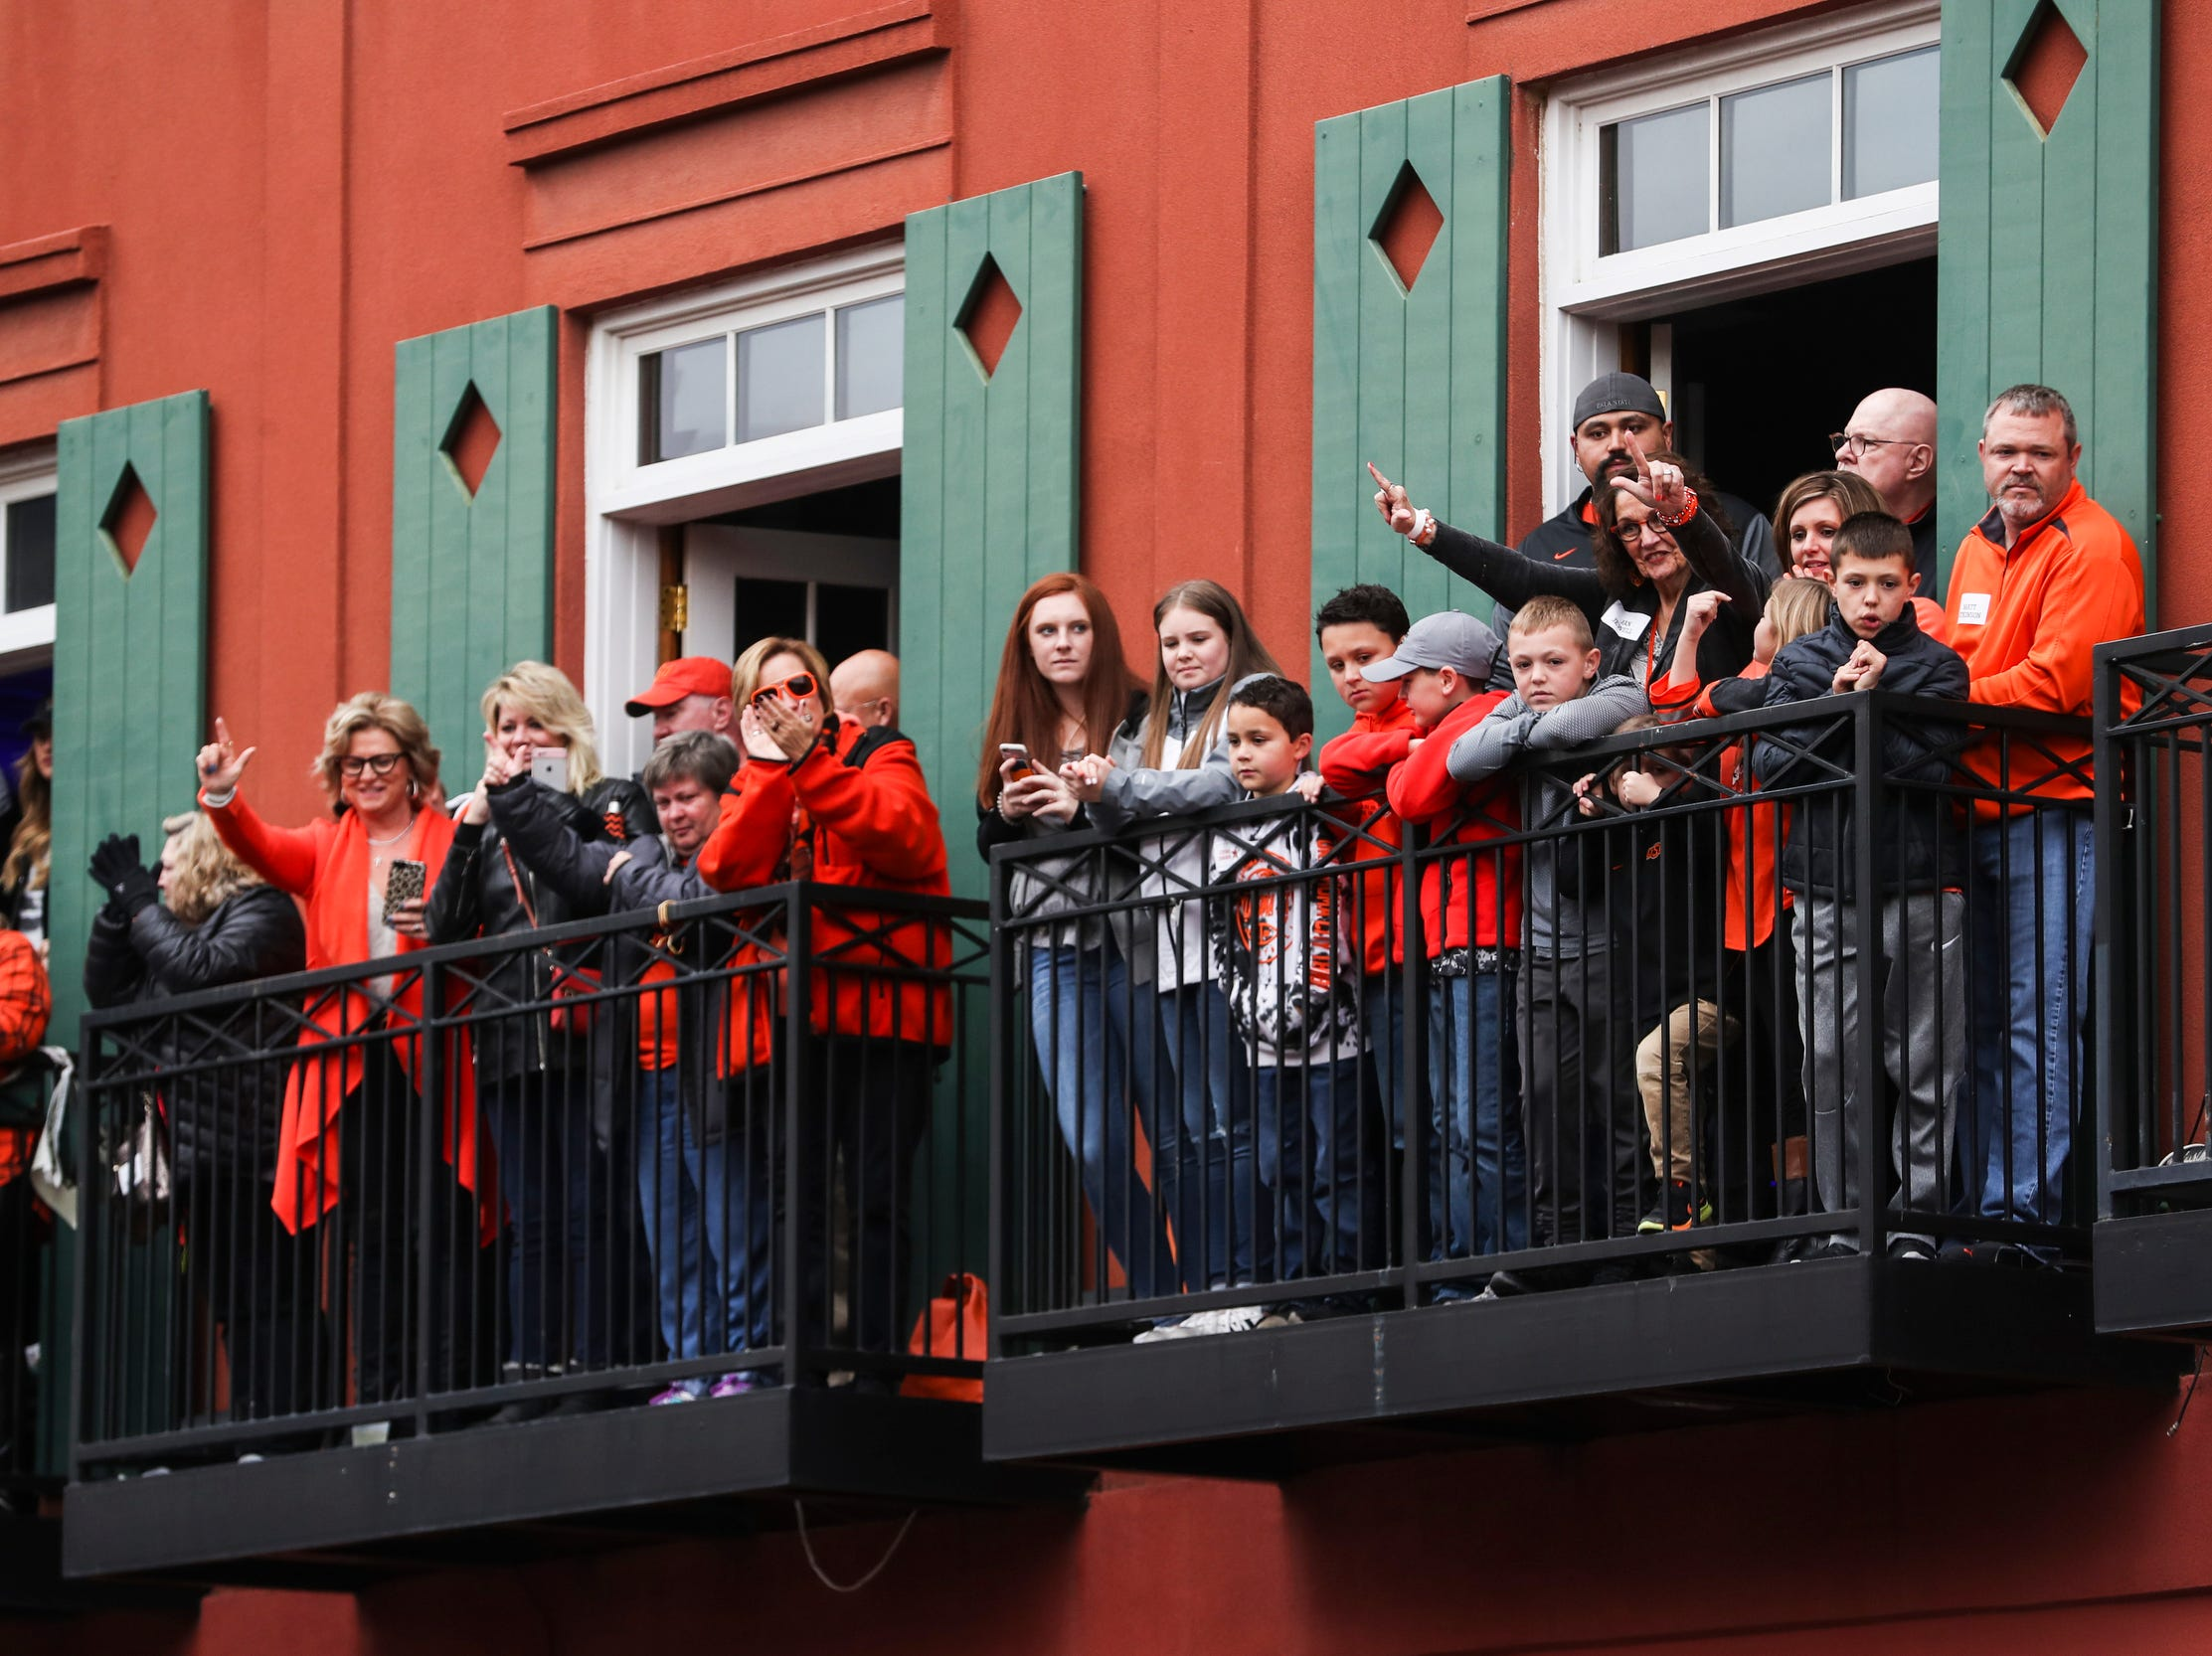 December 30 2018 - People watch from Jerry Lee Lewis' Cafe & Honky Tonk during the Annual Liberty Bowl Parade & Pep Rally on Sunday. On Monday the Oklahoma State Cowboys and Missouri Tigers play in the 2018 AutoZone Liberty Bowl.